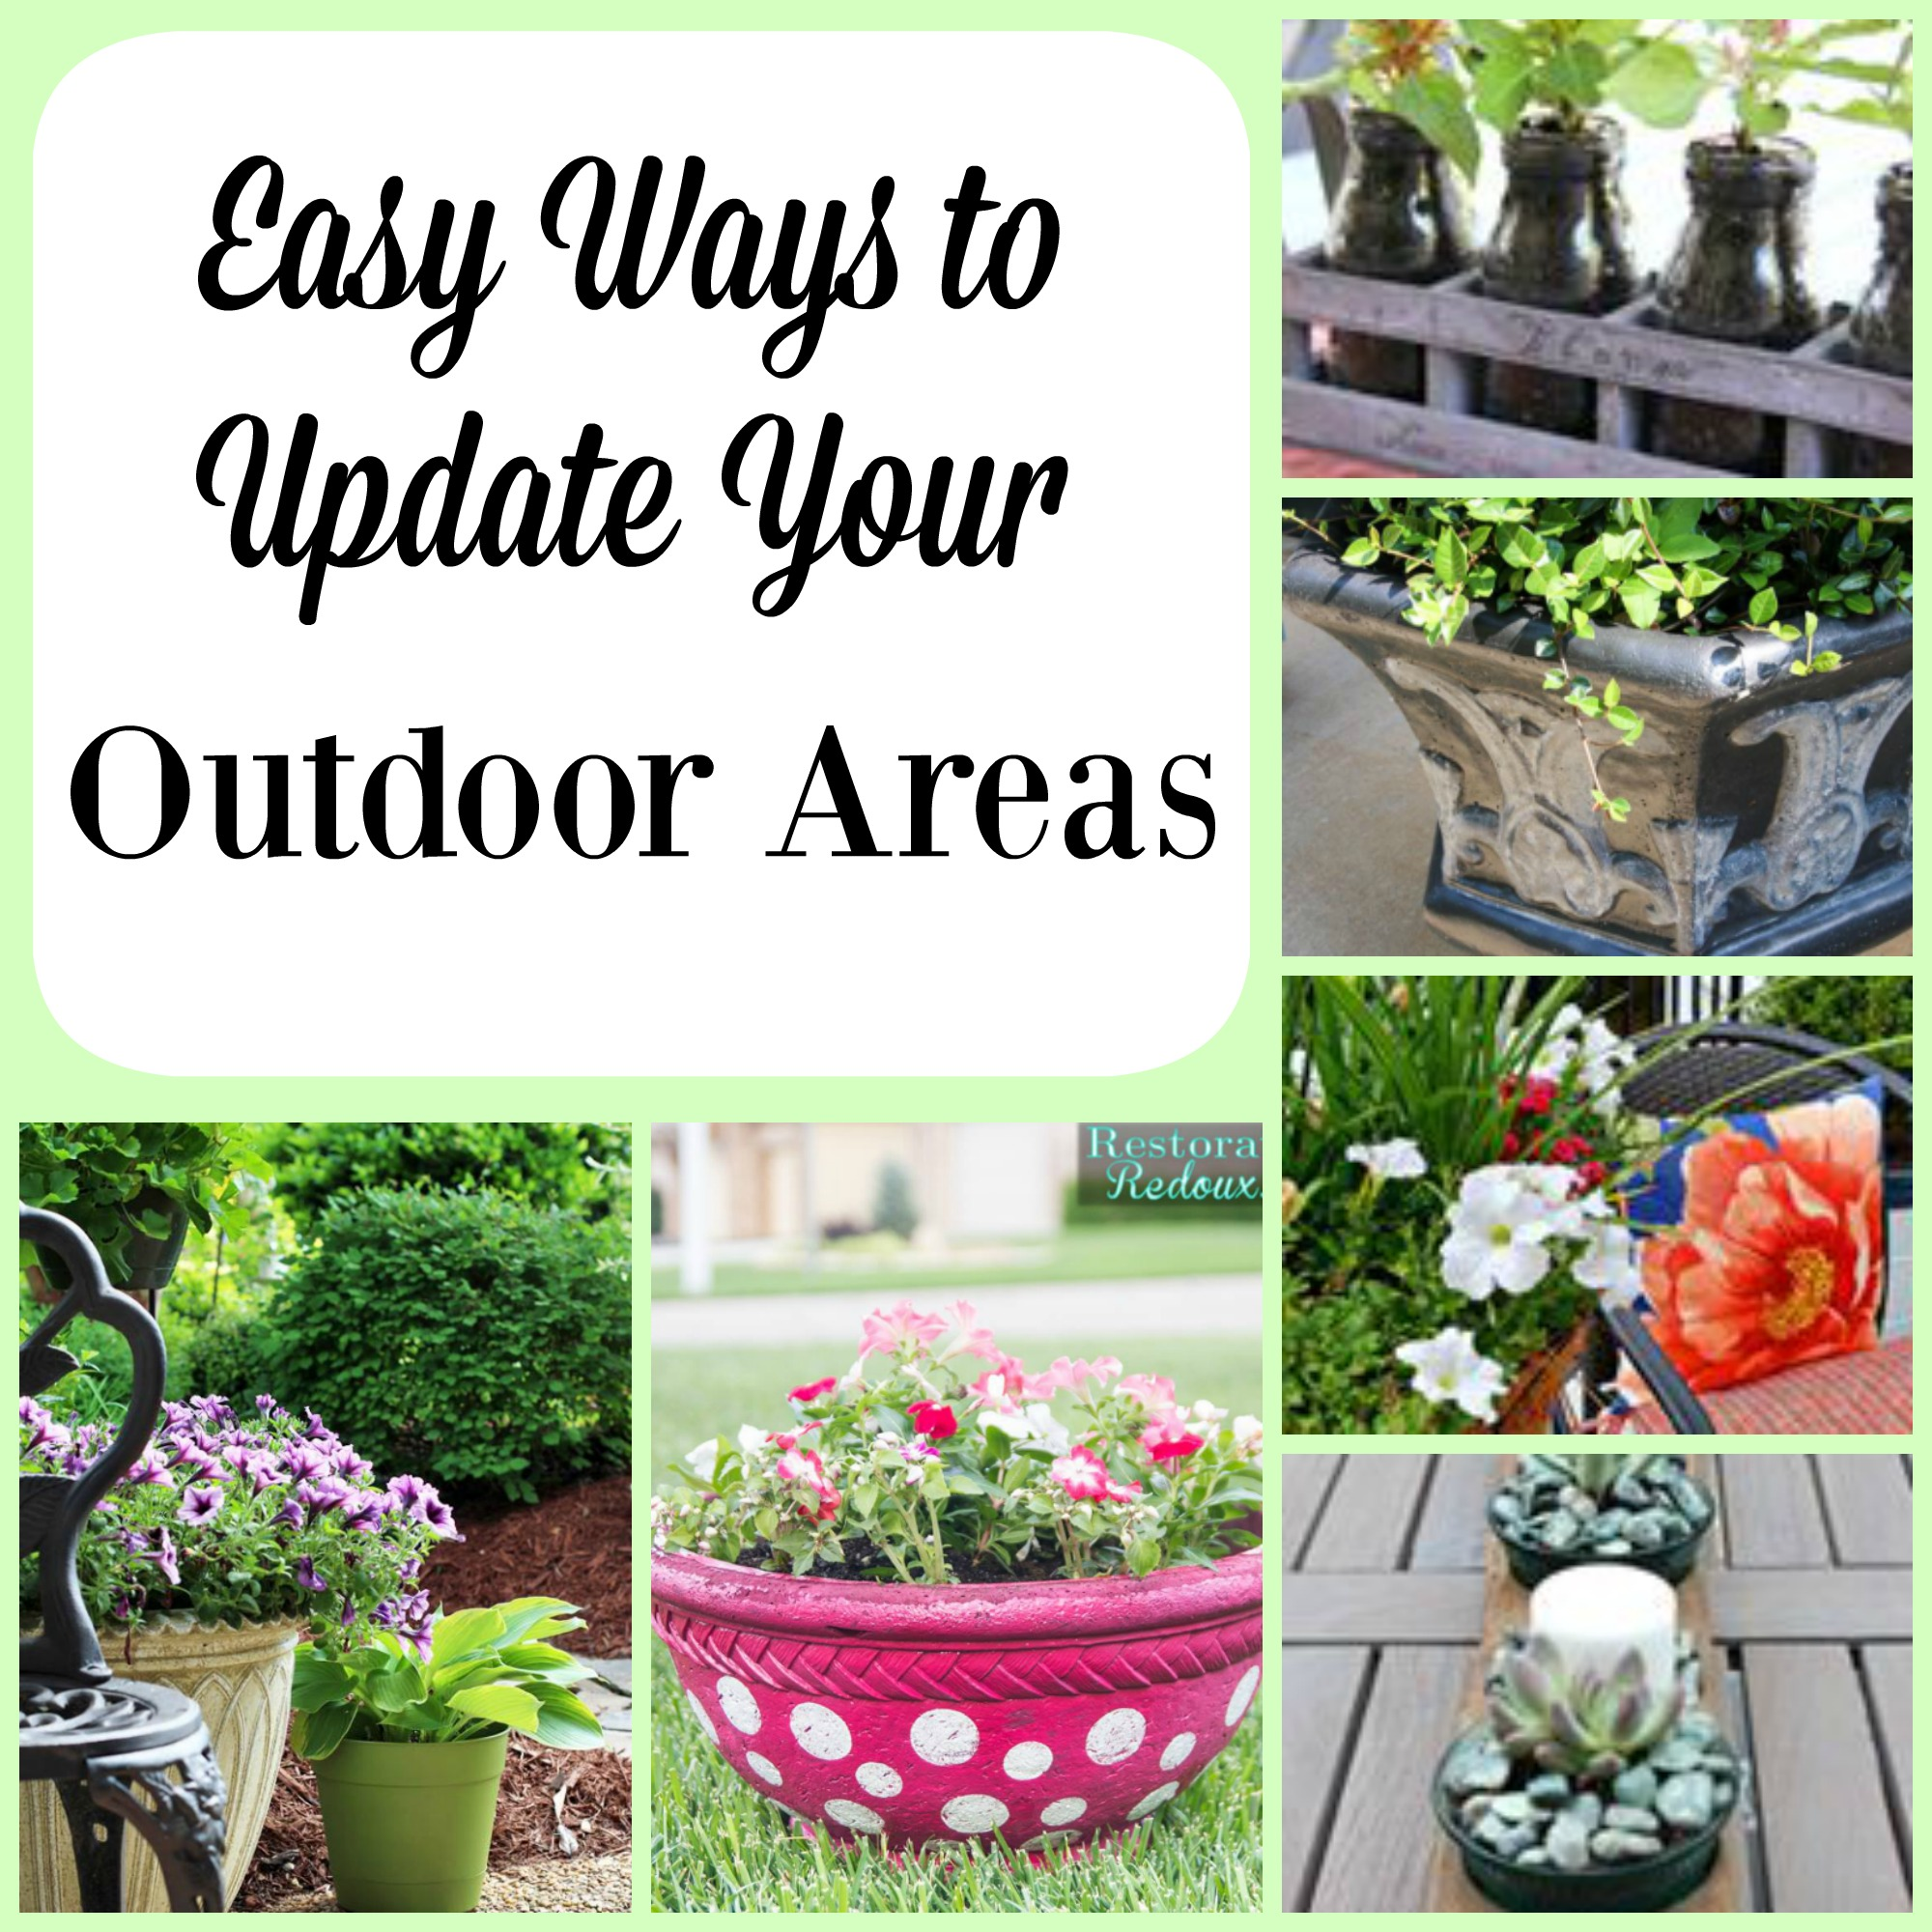 Easy Ways to Update Your Outdoor Areas